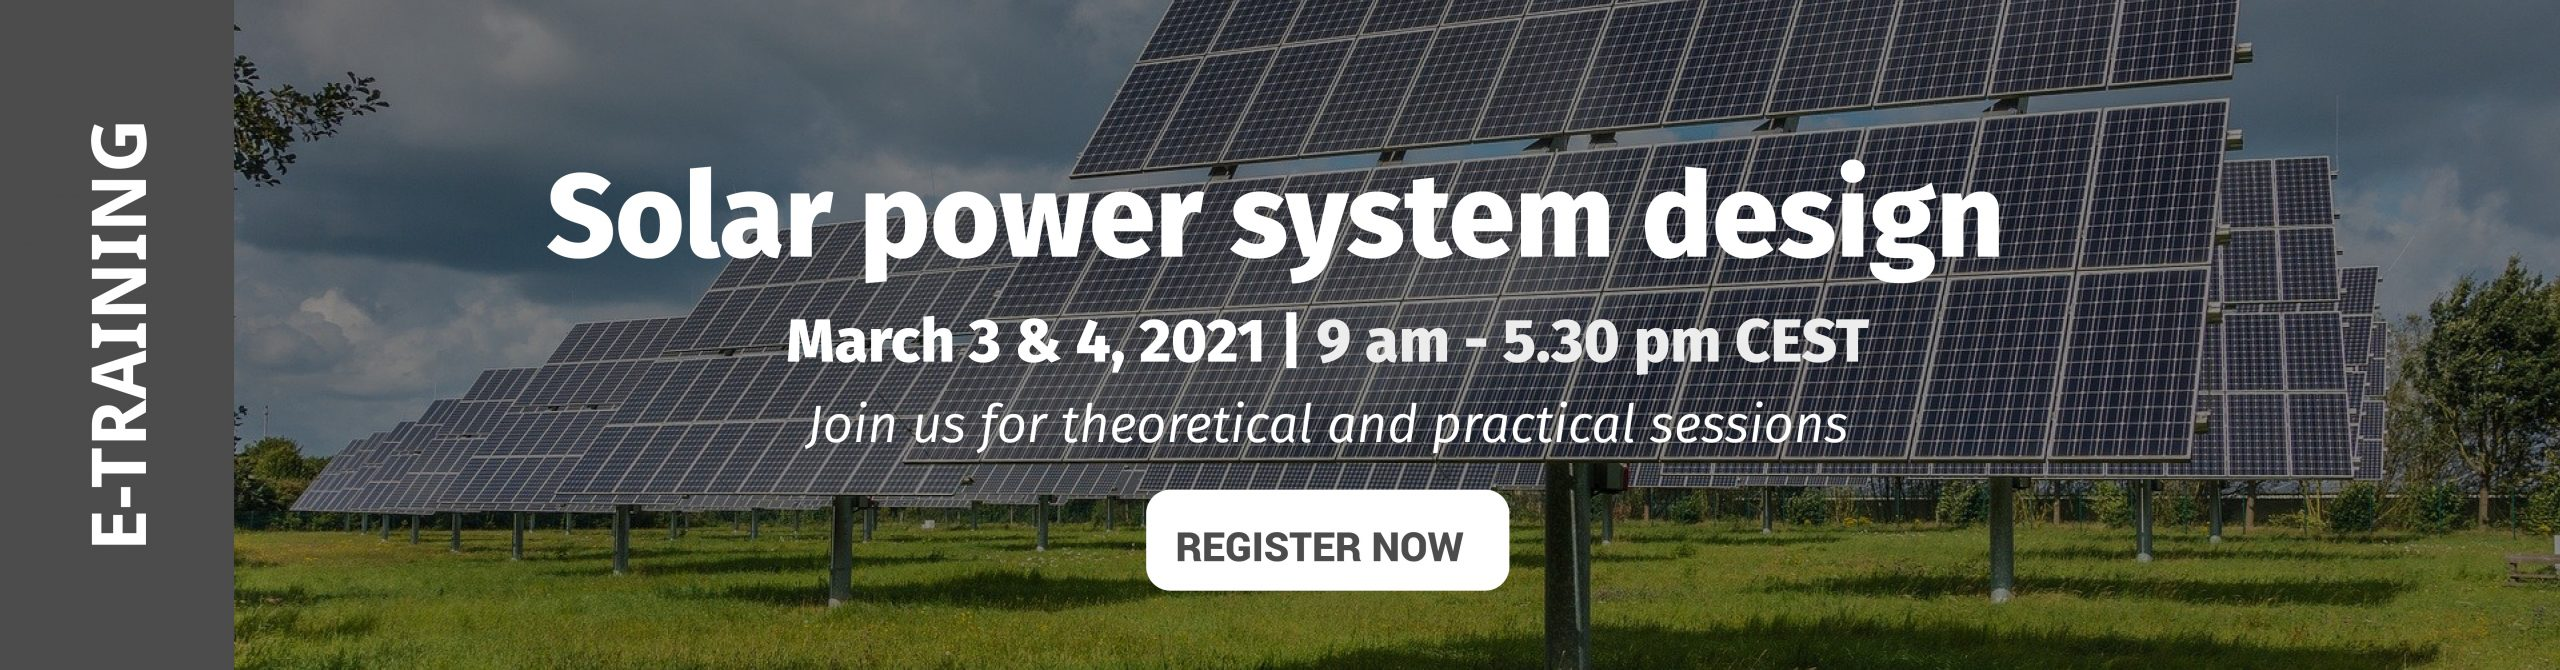 2021-Banners-Solar-power-system2-HP-PWS-scaled